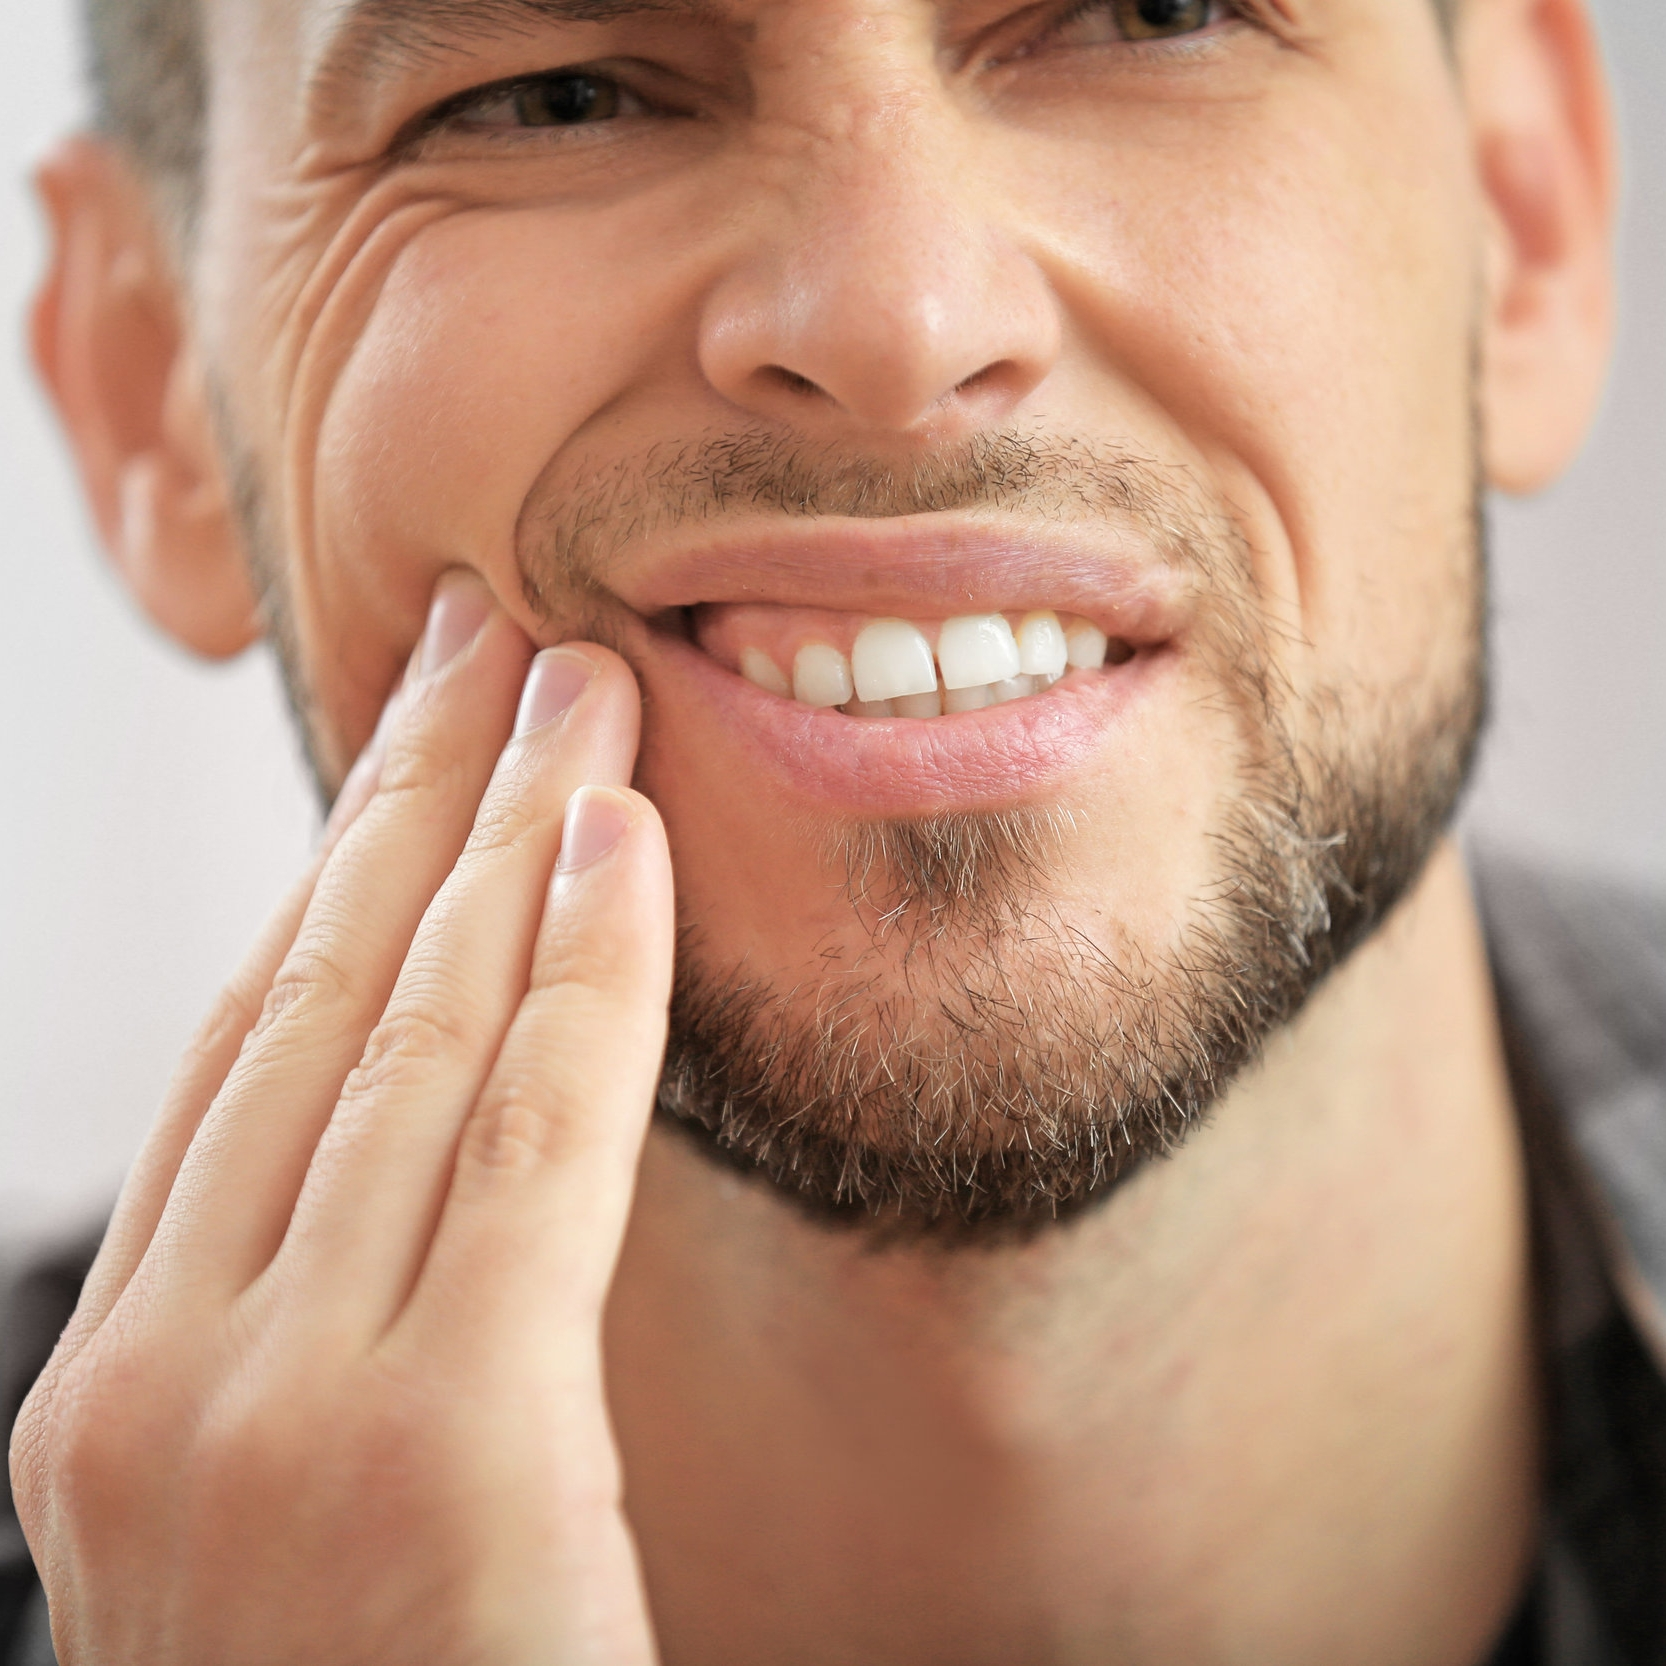 TMJ Injuries | Physical Therapy